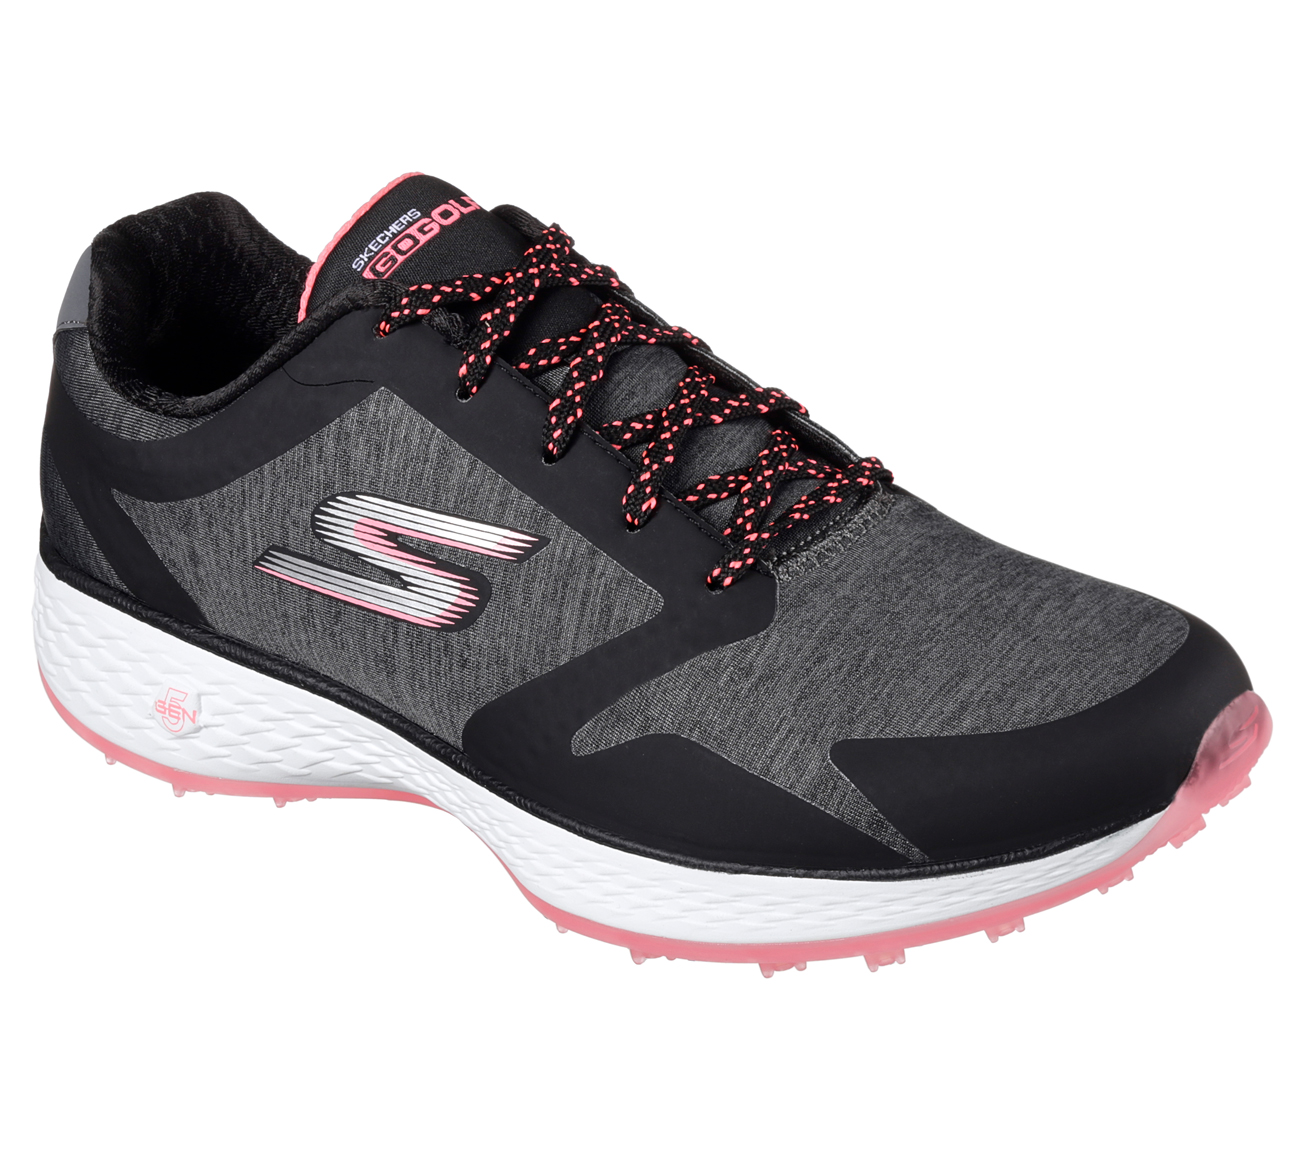 Sketchers Women's Go Golf Birdie Famed Golf Shoe - Black/Pink